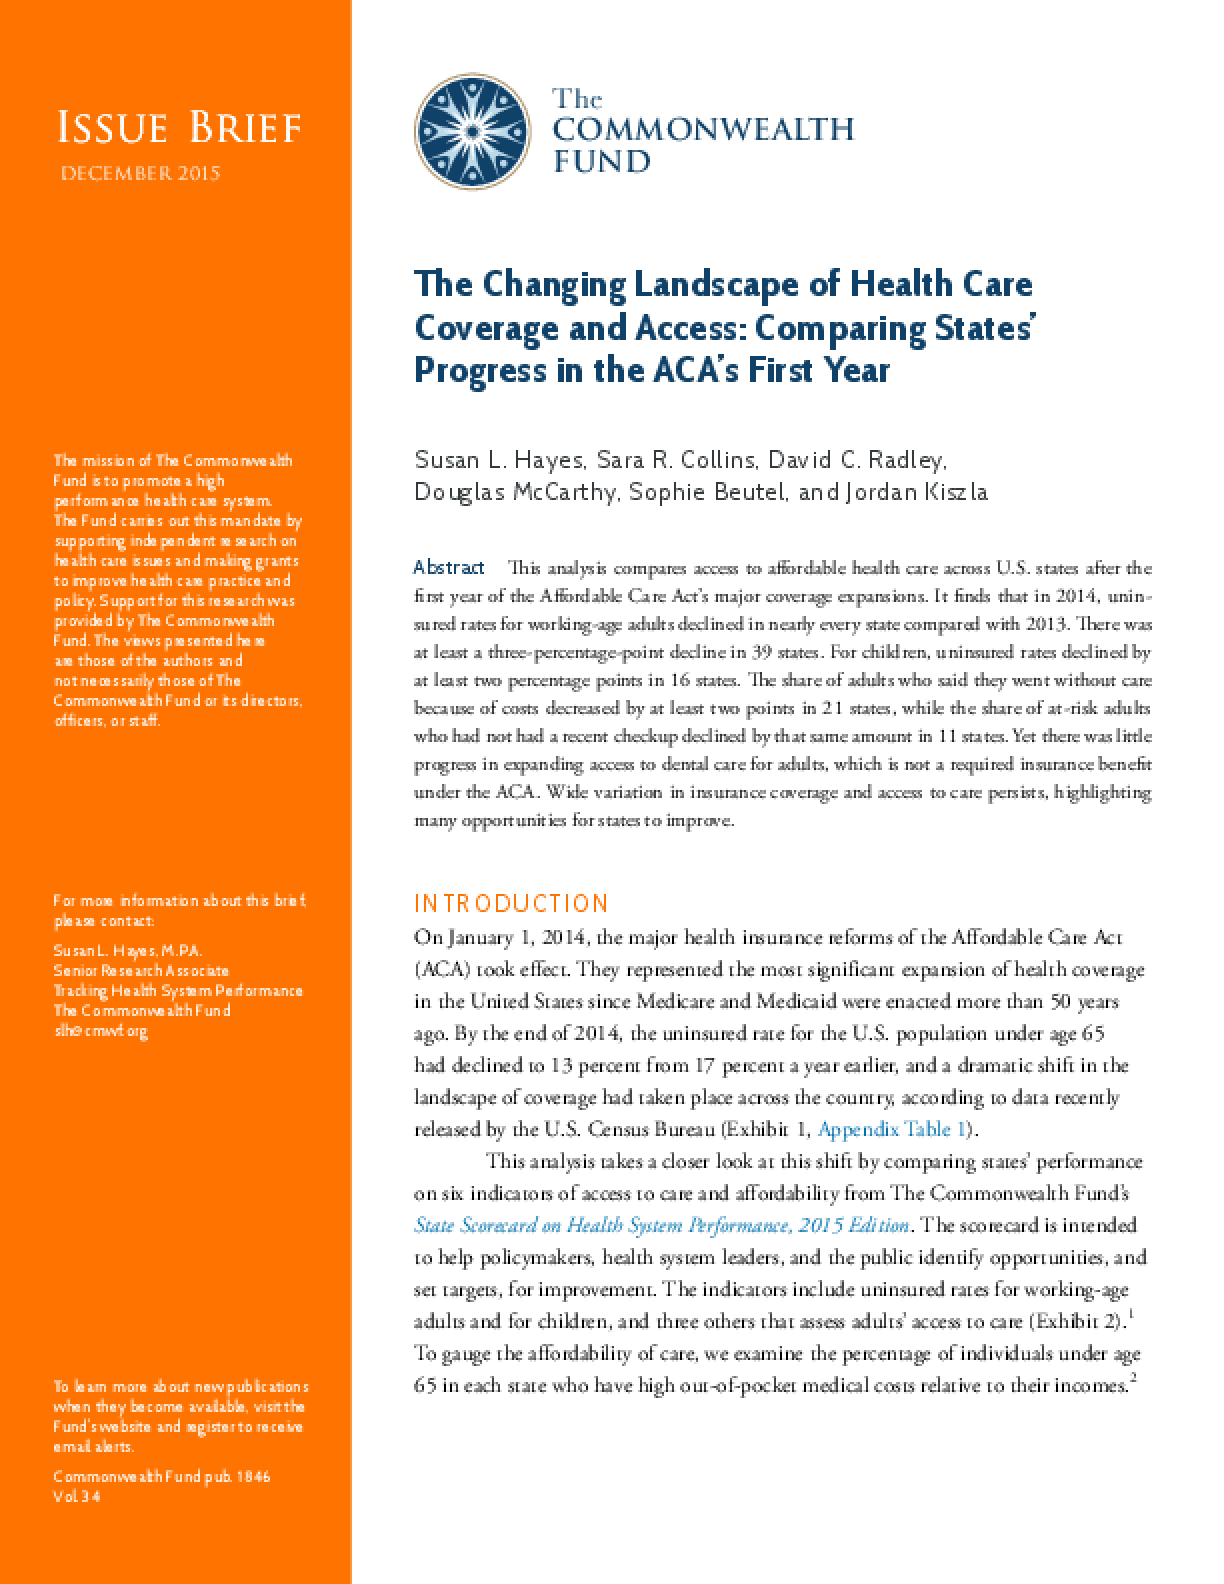 The Changing Landscape of Health Care Coverage and Access: Comparing States' Progress in the ACA's First Year